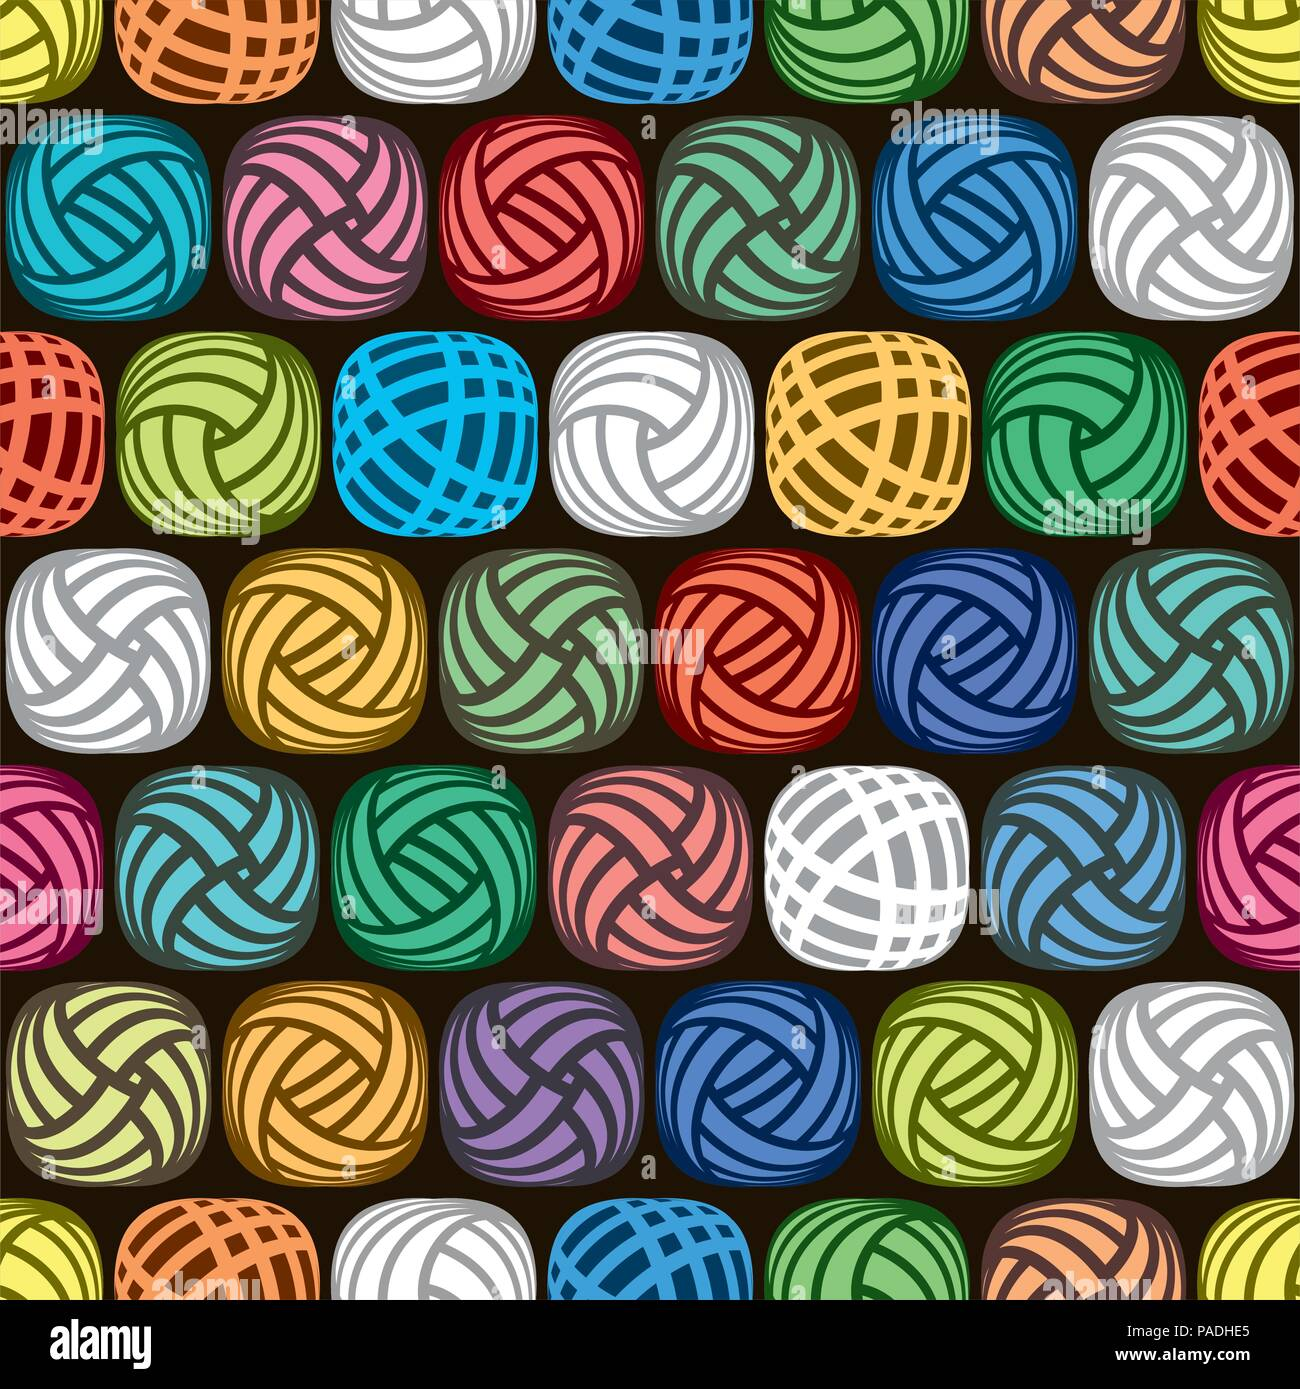 vector seamless abstract pattern of colorful yarn balls on black background, illustration of wool knitting hobby - Stock Vector